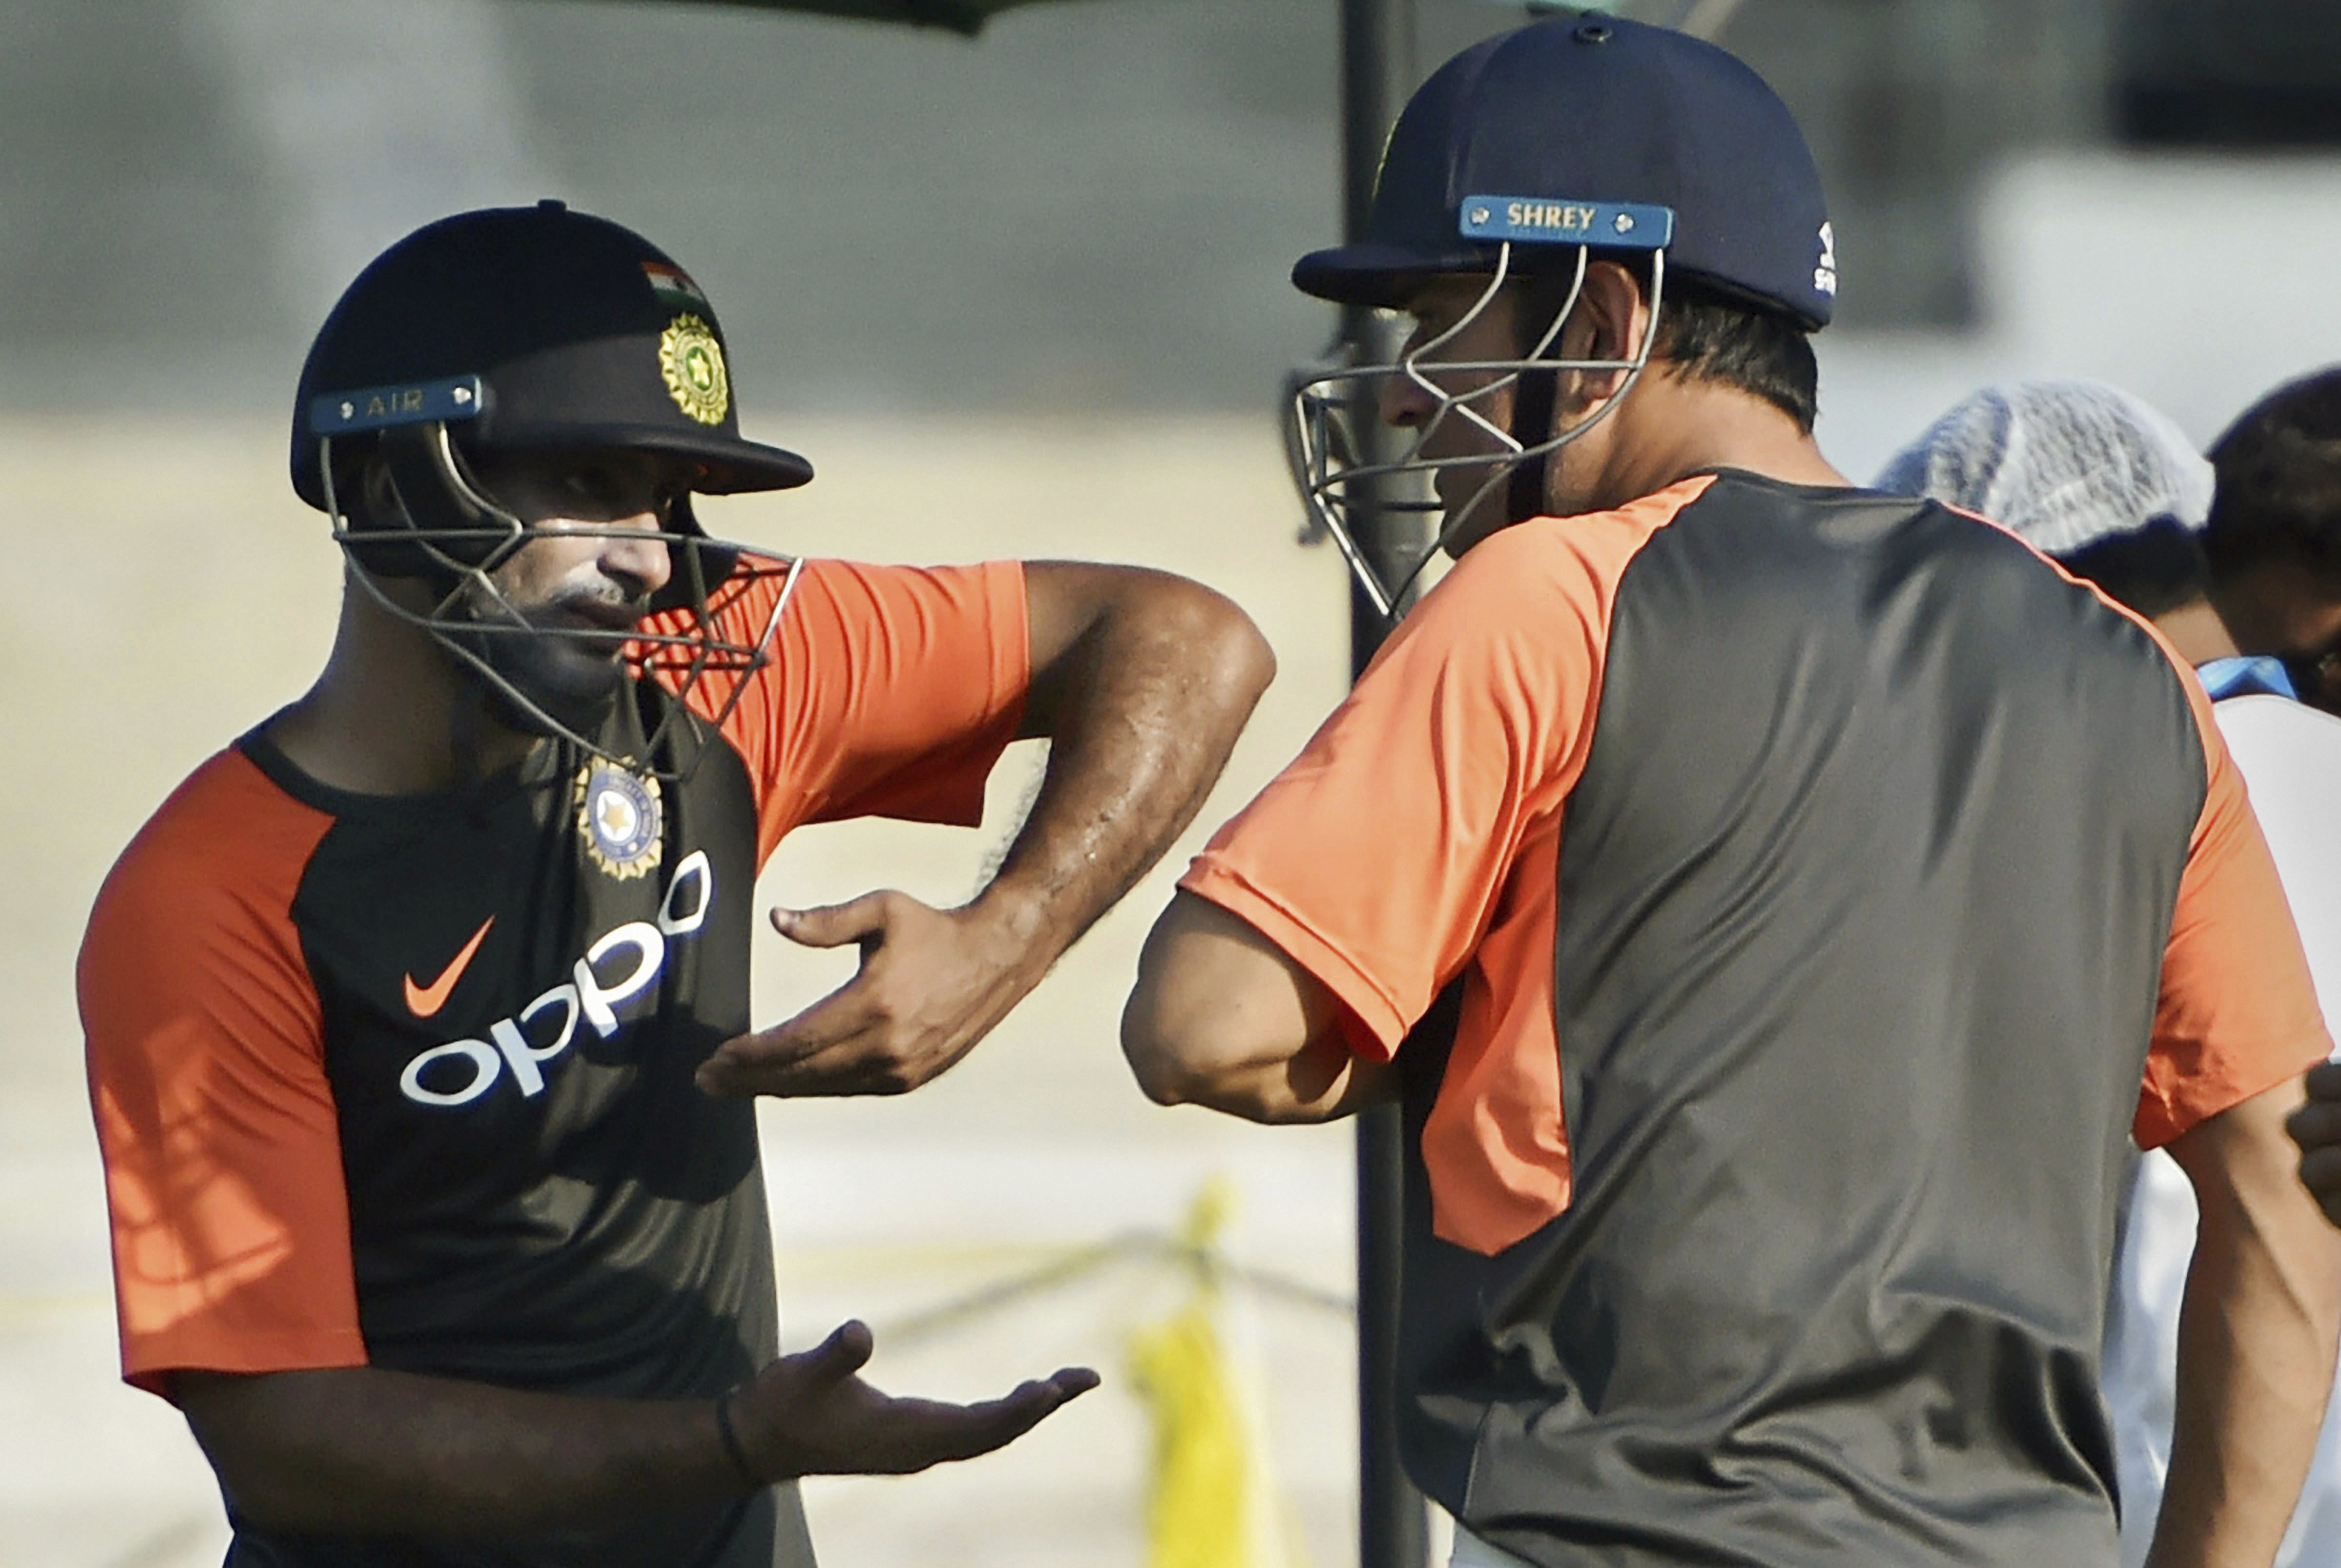 Team India players Ambati Rayudu and MS Dhoni during a practice session ahead of 4th ODI cricket match against West Indies, in Mumbai - PTI